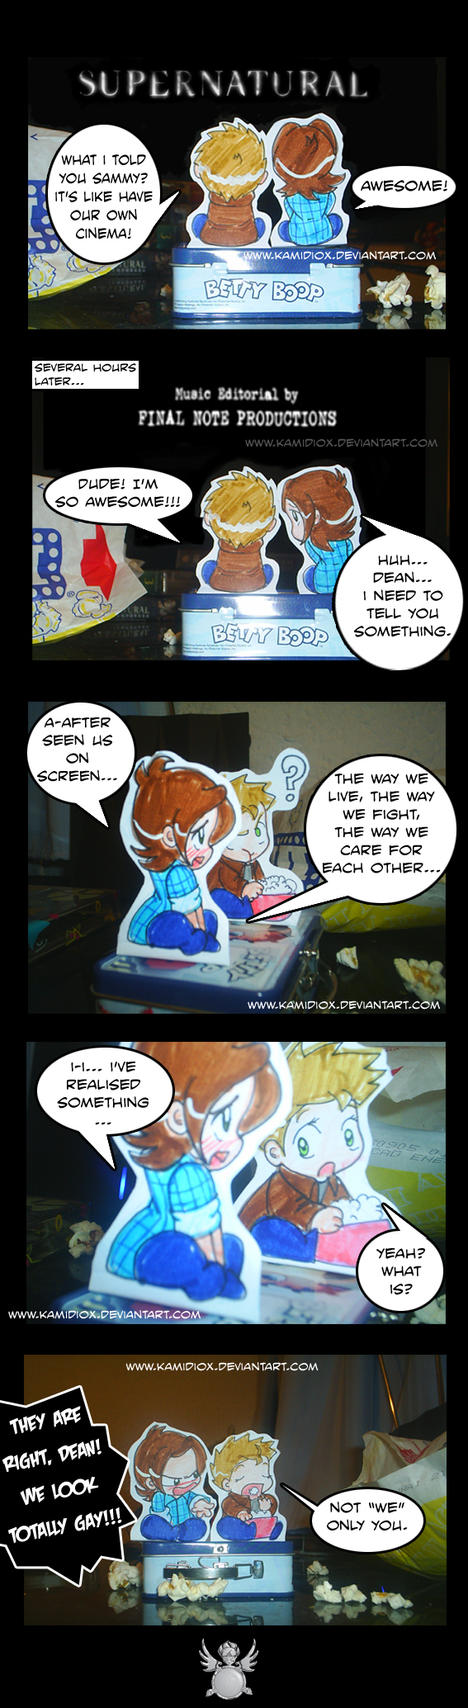 Cinema by KamiDiox